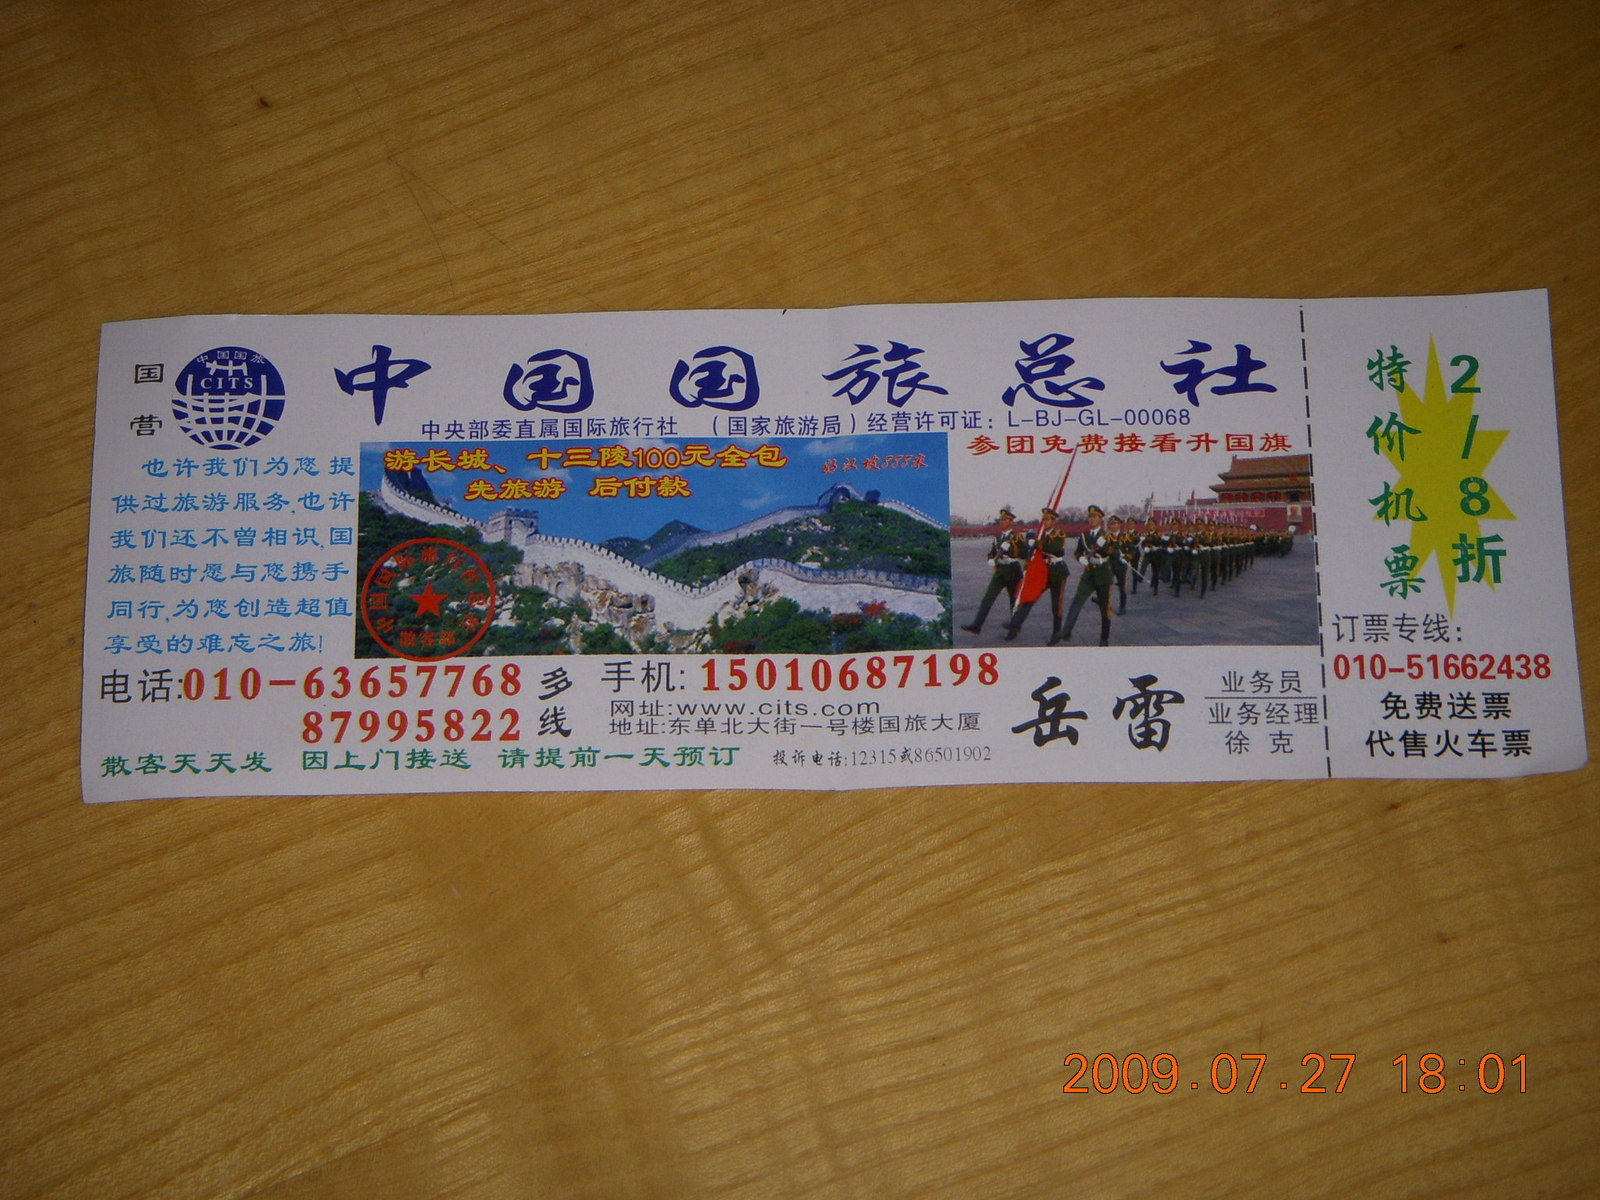 China eclipse - Beijing advertisement ticket